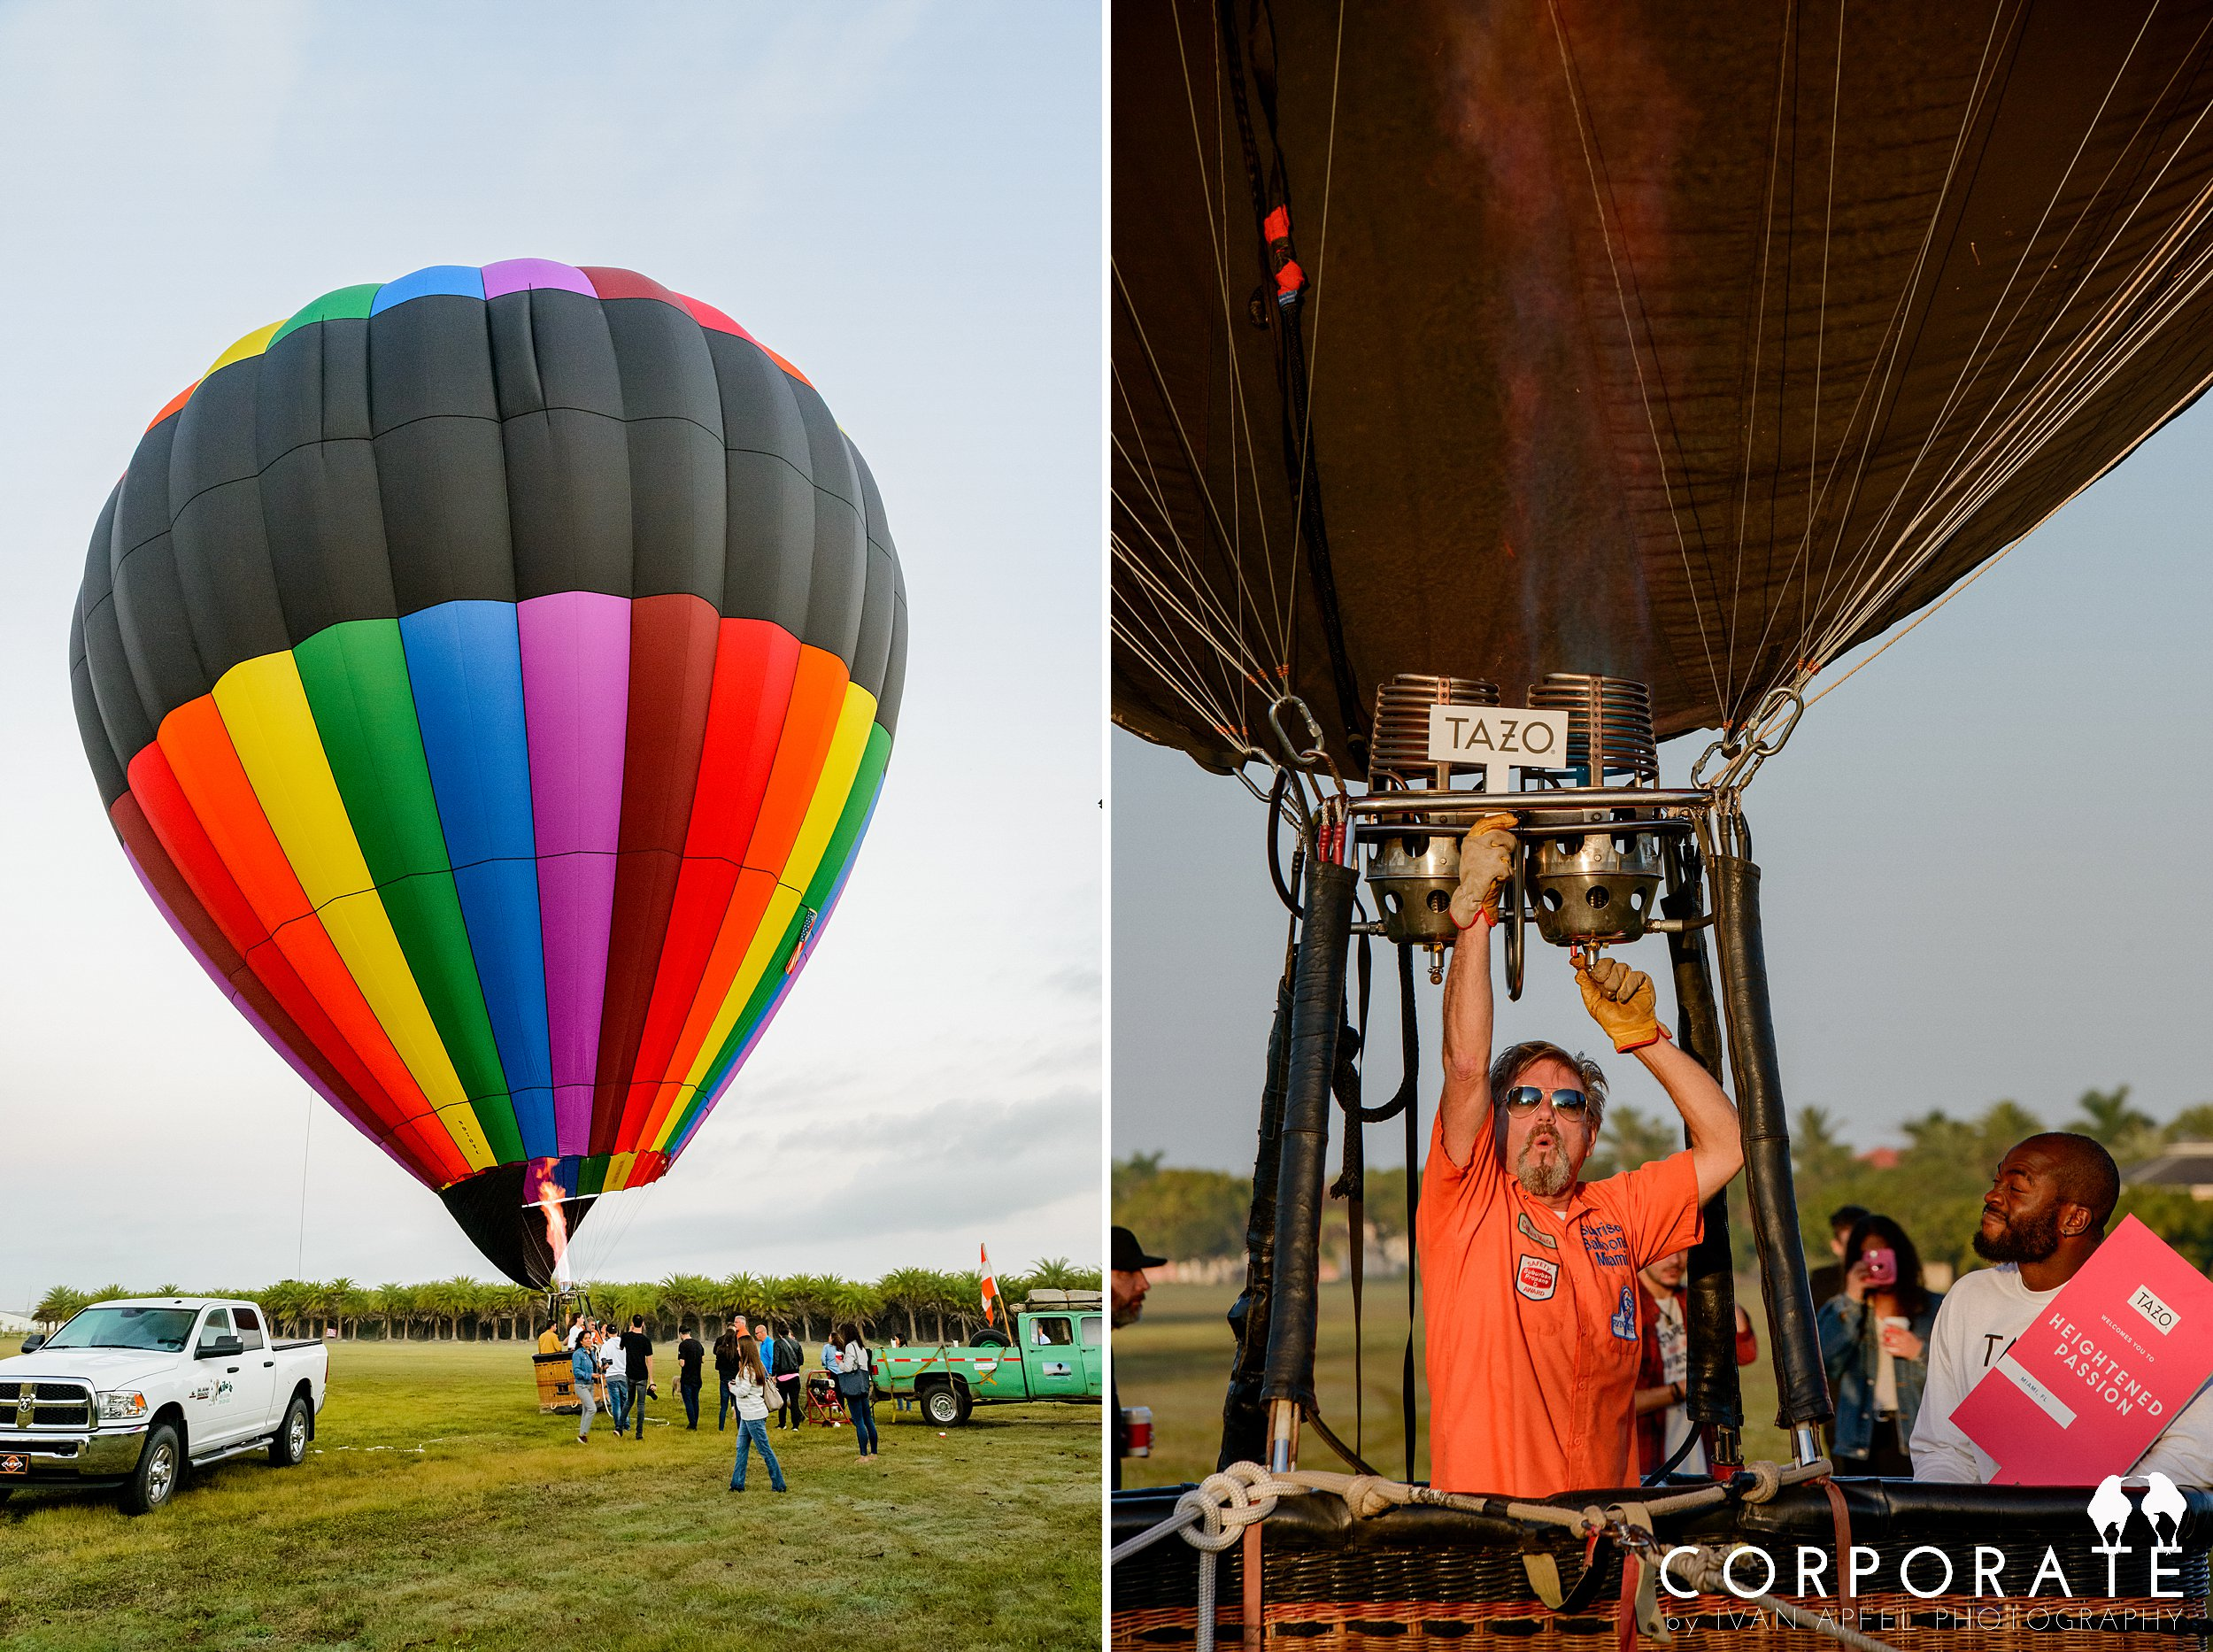 Miami Corporate Experience Photographer Tazo Tea Hot Air Balloon Influencers_0007.jpg